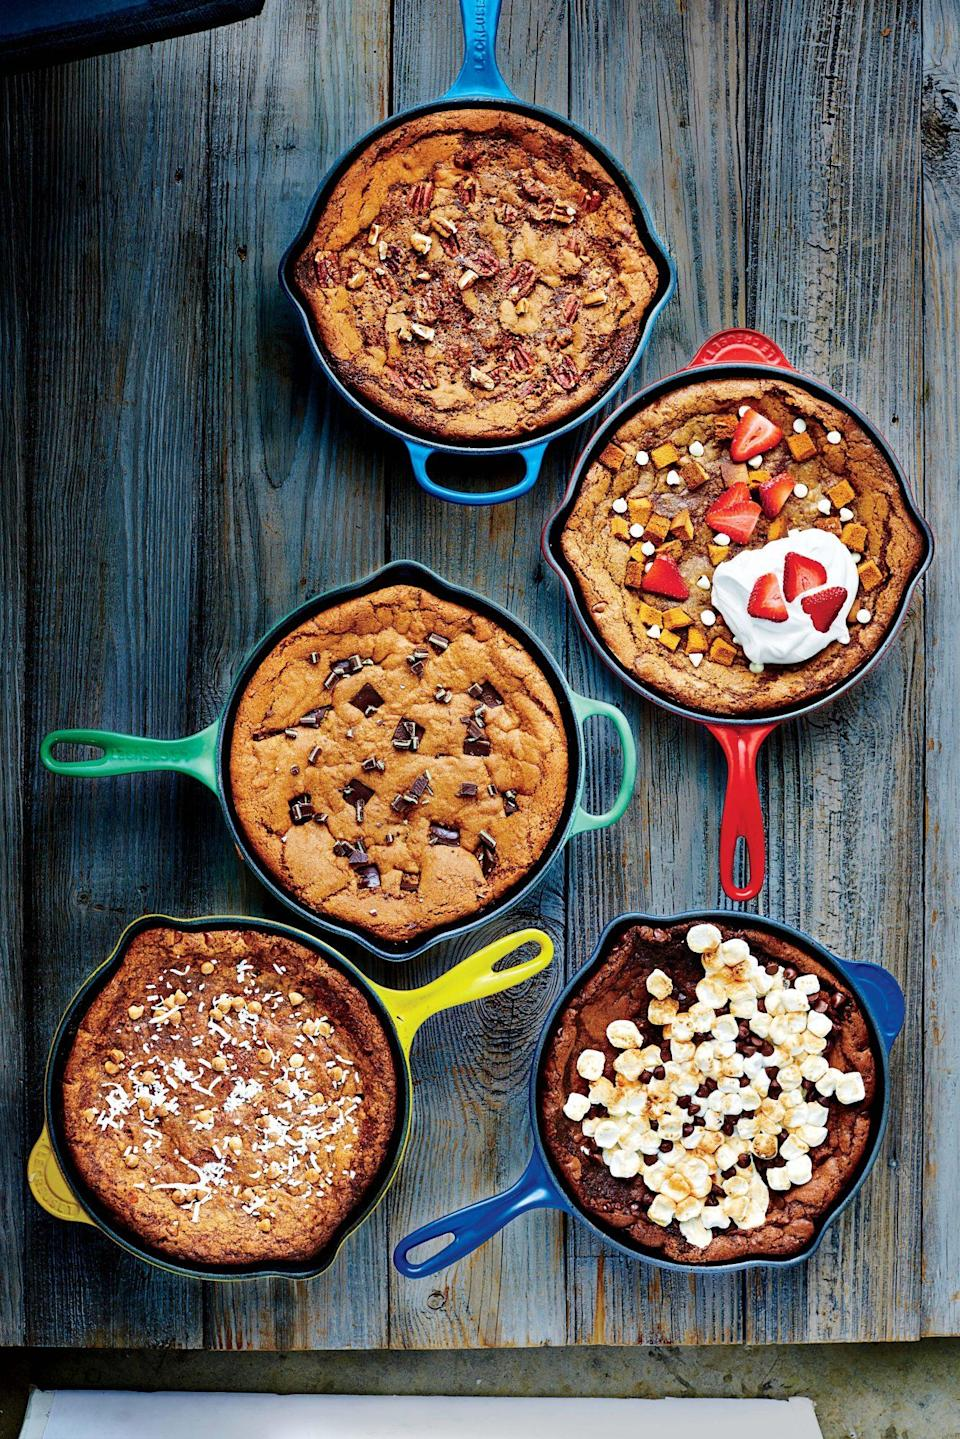 "<p><strong>Recipe: </strong><a href=""http://www.southernliving.com/syndication/deep-dish-chocolate-chip-skillet-cookie"" rel=""nofollow noopener"" target=""_blank"" data-ylk=""slk:Deep-Dish Chocolate Chip Skillet Cookie"" class=""link rapid-noclick-resp""><strong>Deep-Dish Chocolate Chip Skillet Cookie</strong></a></p> <p>We've got five fun twists on the classic chocolate chip skillet cookie so every family member can get a bite of their favorite flavors.</p>"